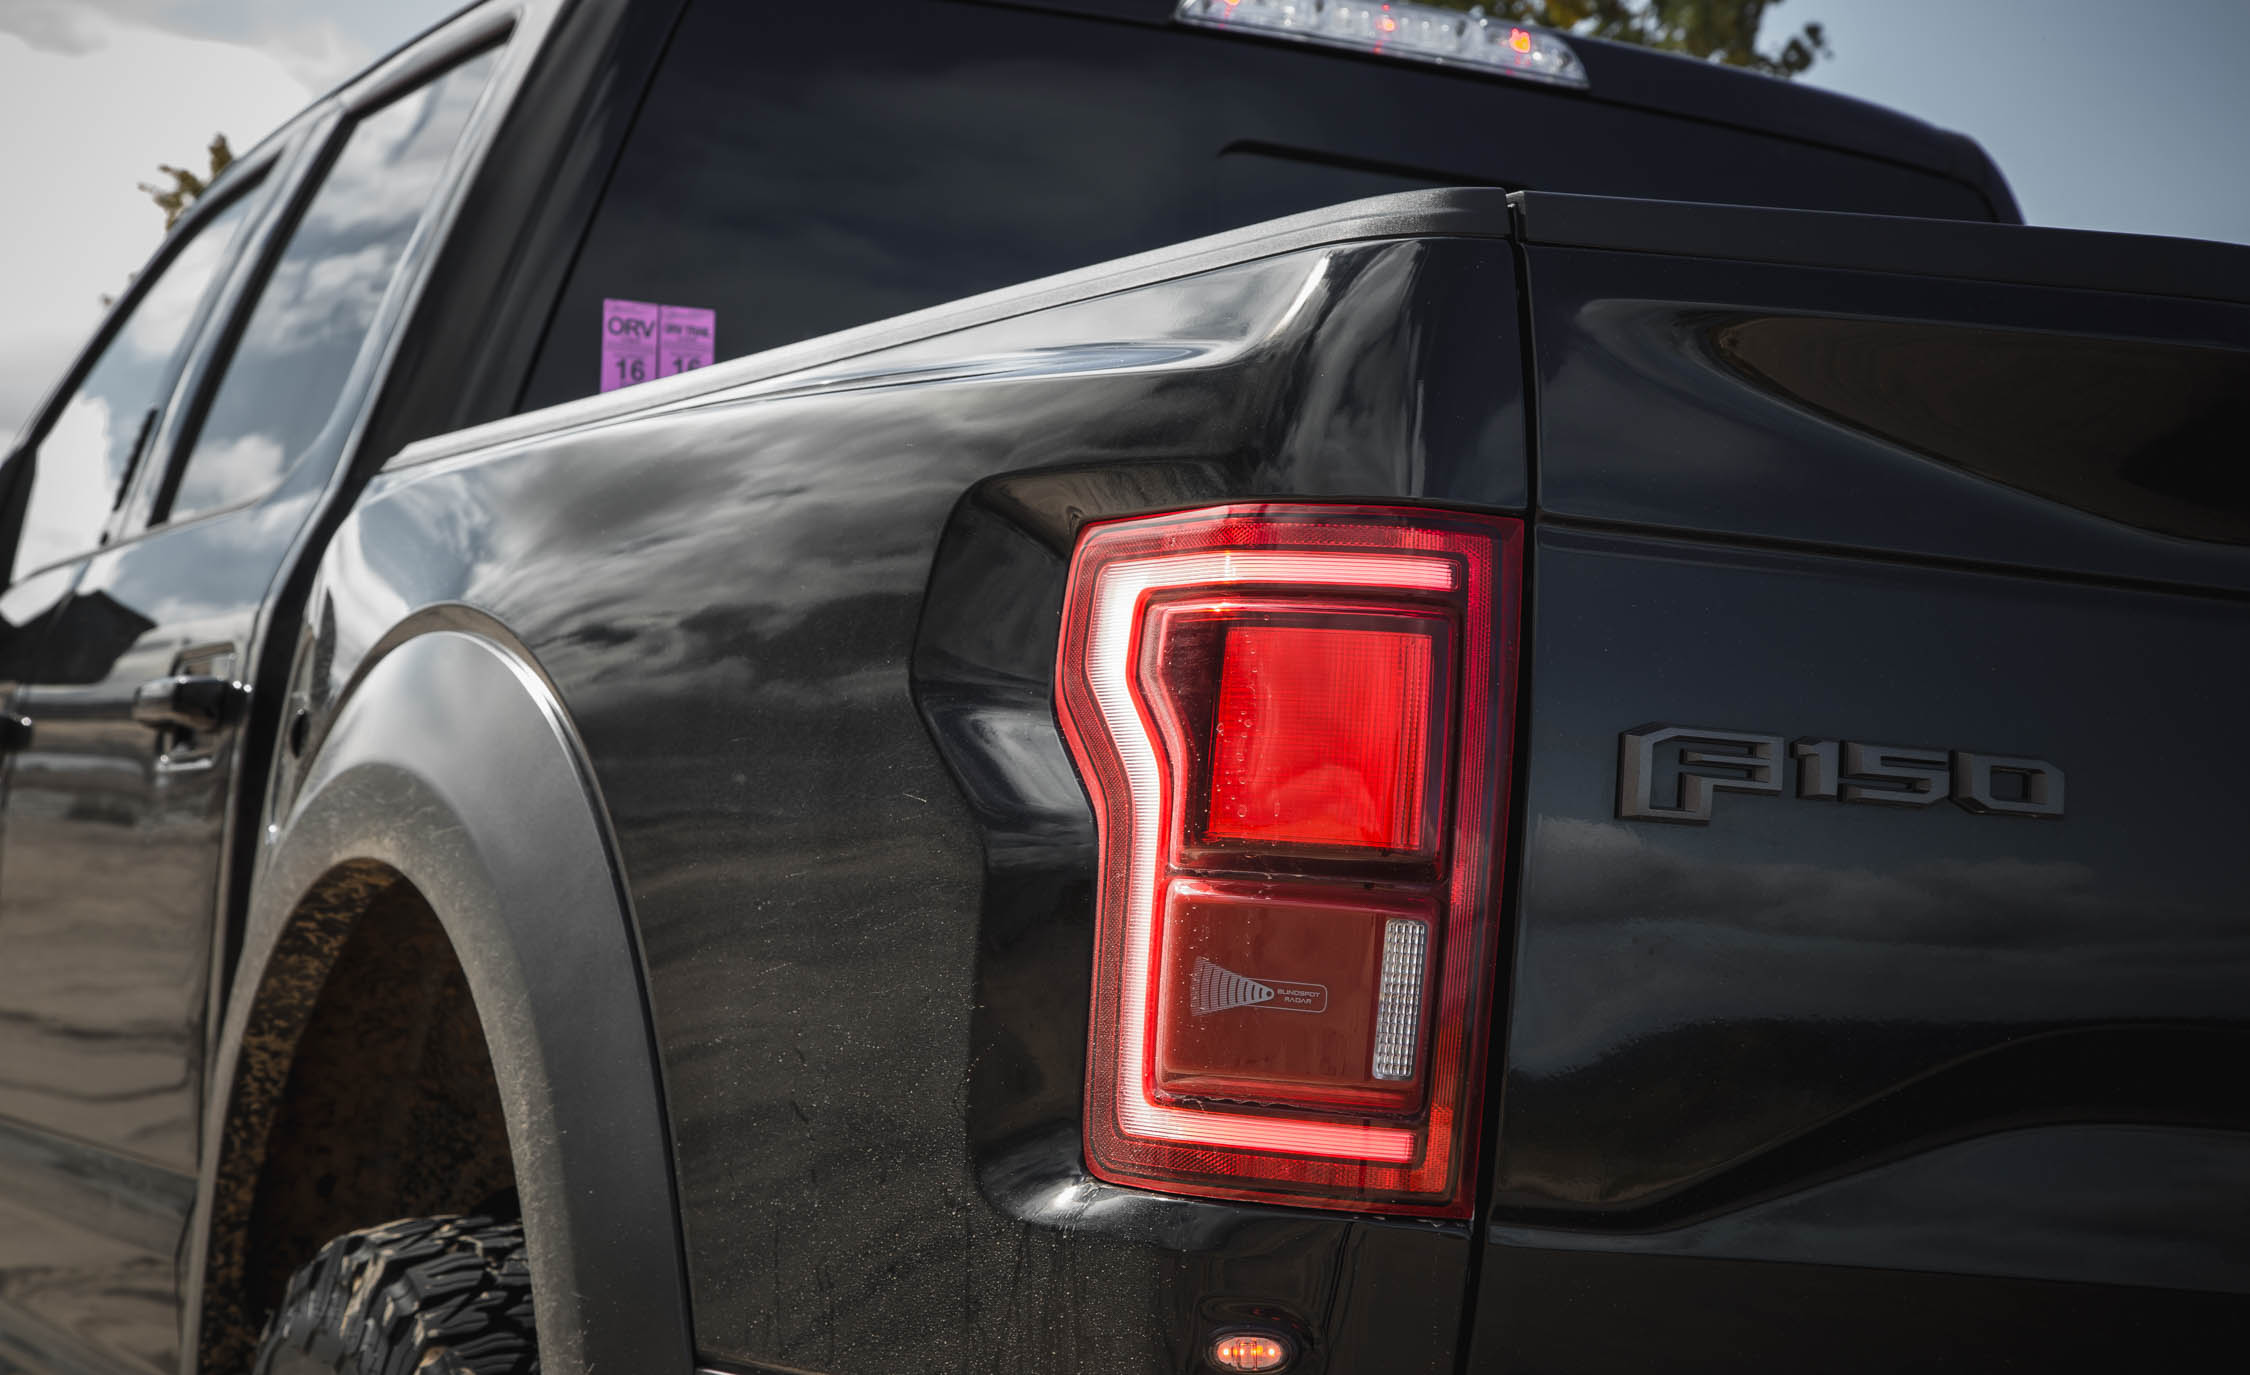 2017 Ford F 150 Raptor SuperCrew Exterior View Taillight (View 25 of 47)